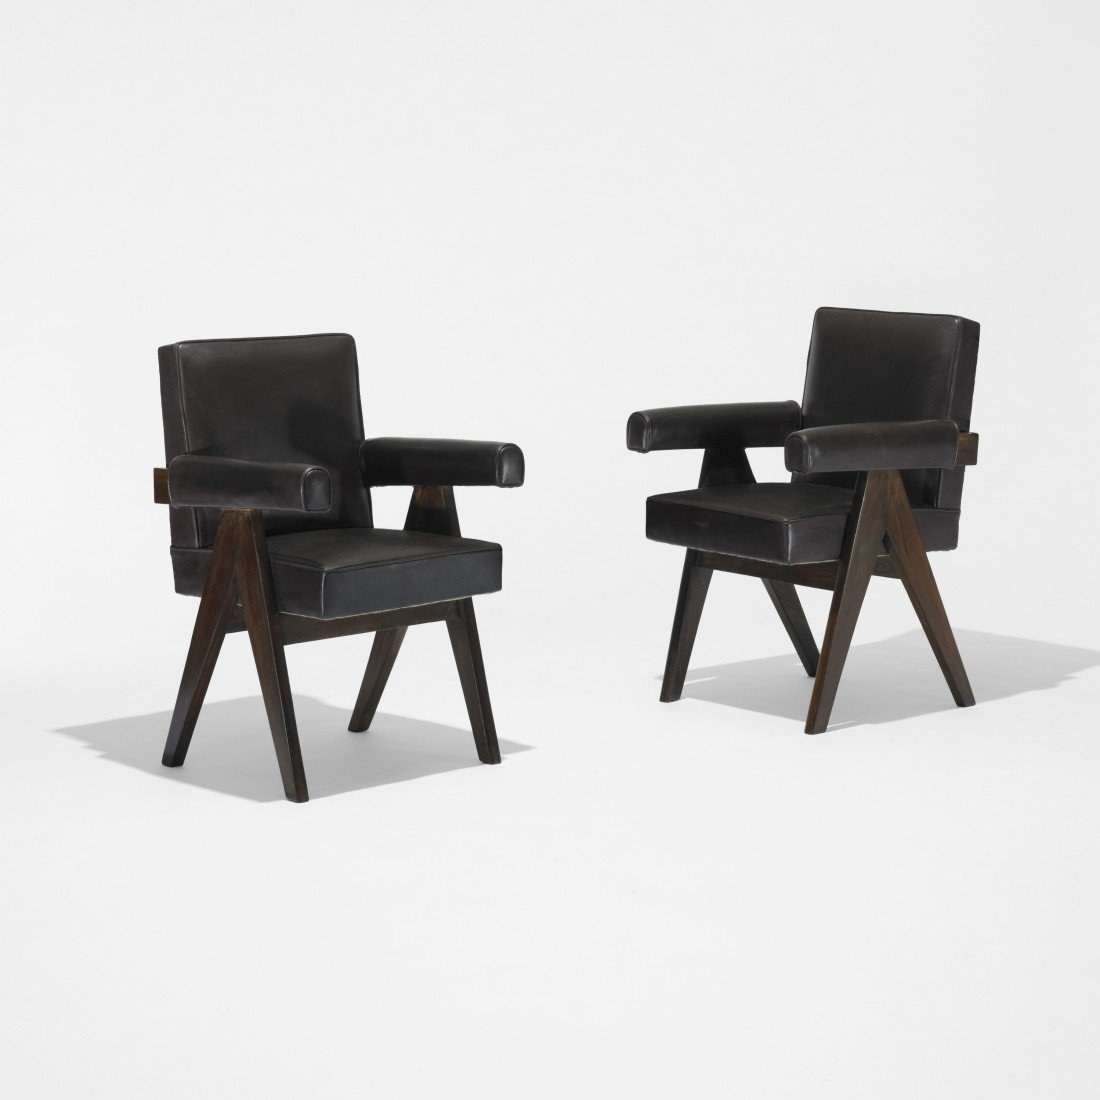 167: Pierre Jeanneret pair of Committe armchairs